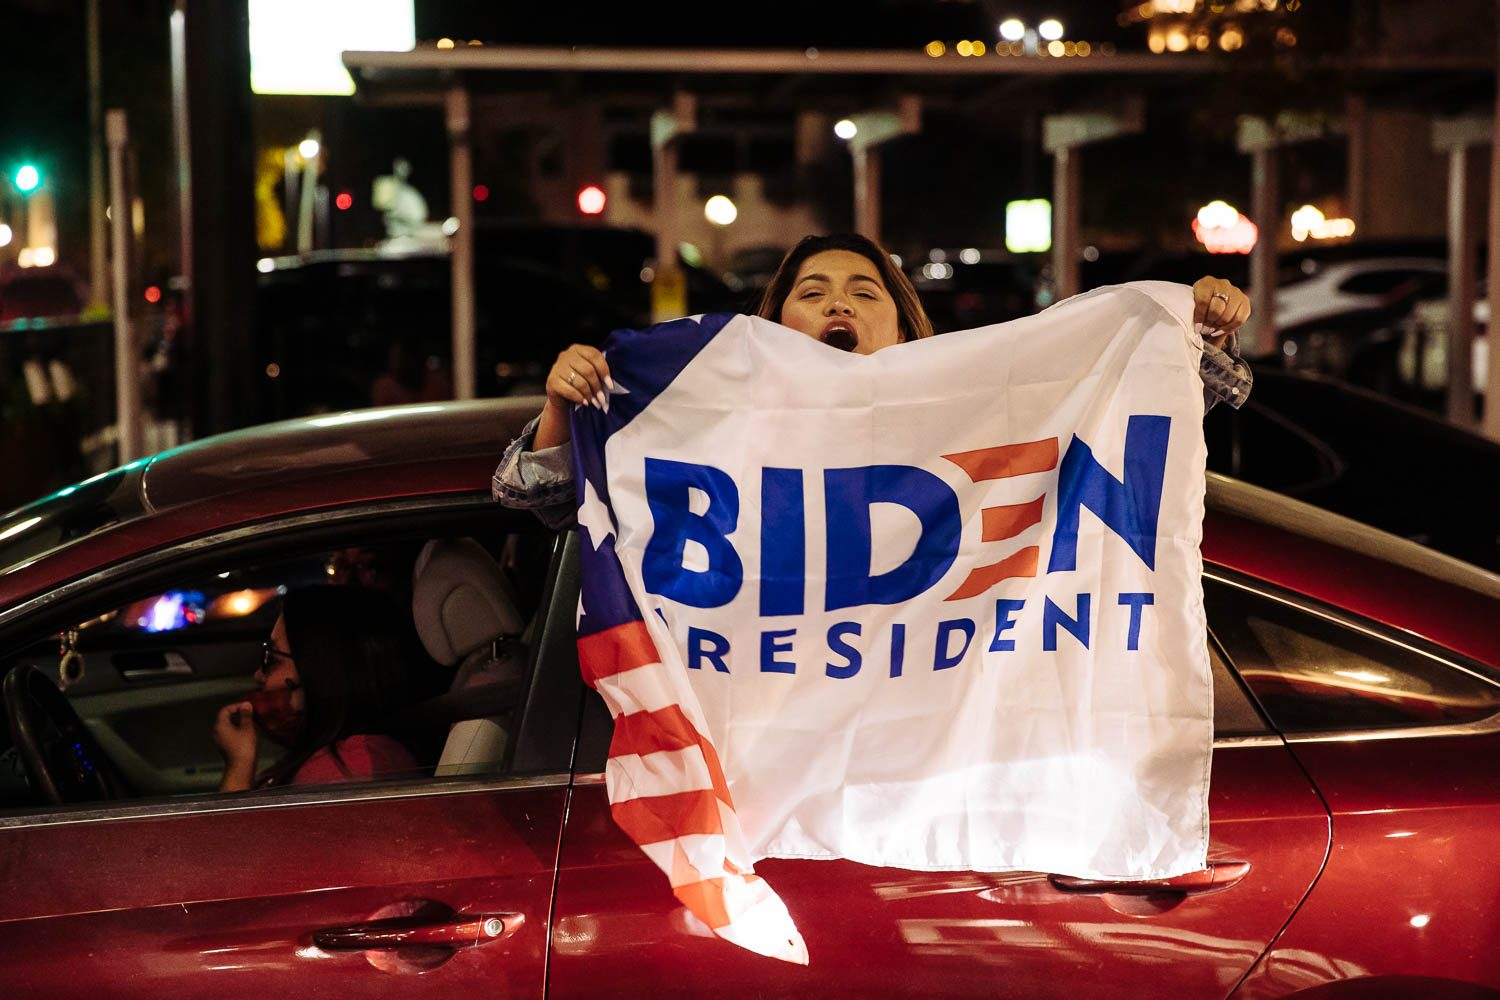 Supporters take to the streets in downtown San Antonio to celebrate President-elect Joe Biden and Vice President-elect Kamala Harris. Photo by Chris Stokes | Heron contributor